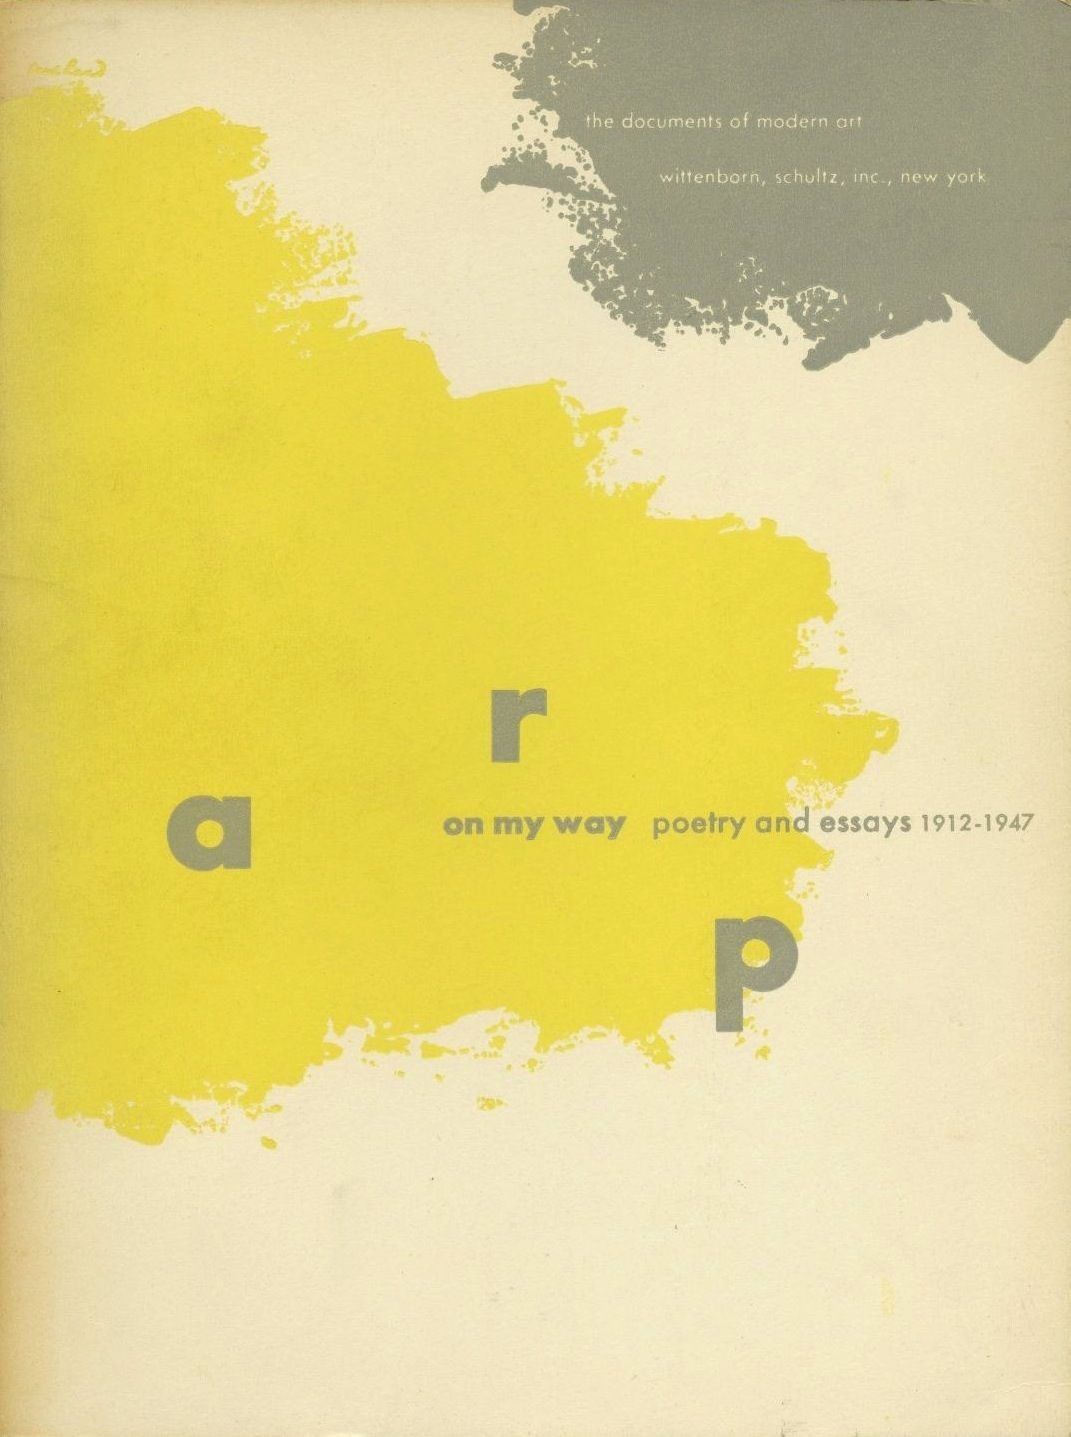 arp on my way poetry and essays wittenborn schulz arp on my way poetry and essays 1912 1947 wittenborn schulz